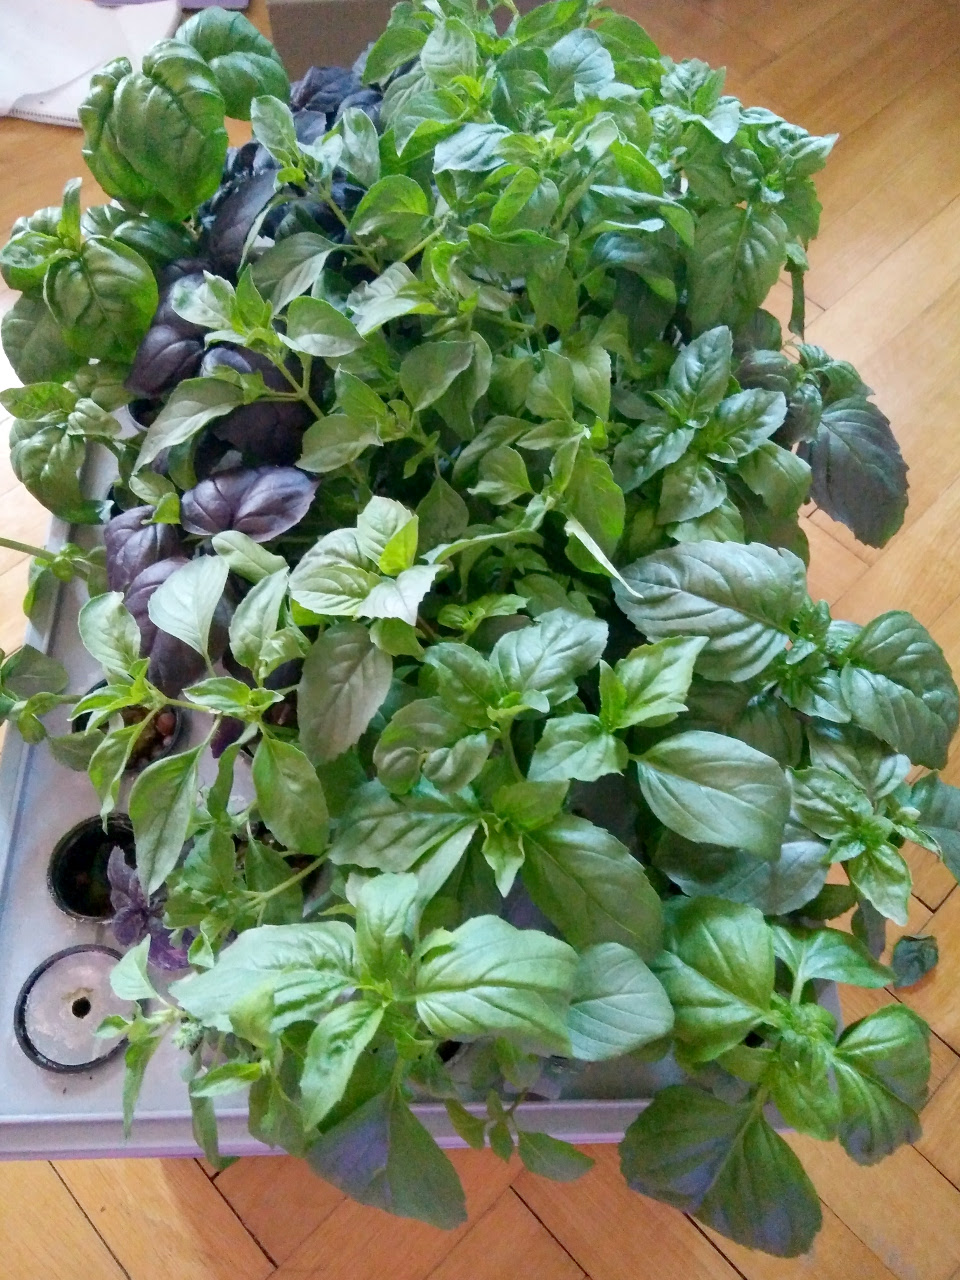 Copious amounts of basil produced during second round of growing